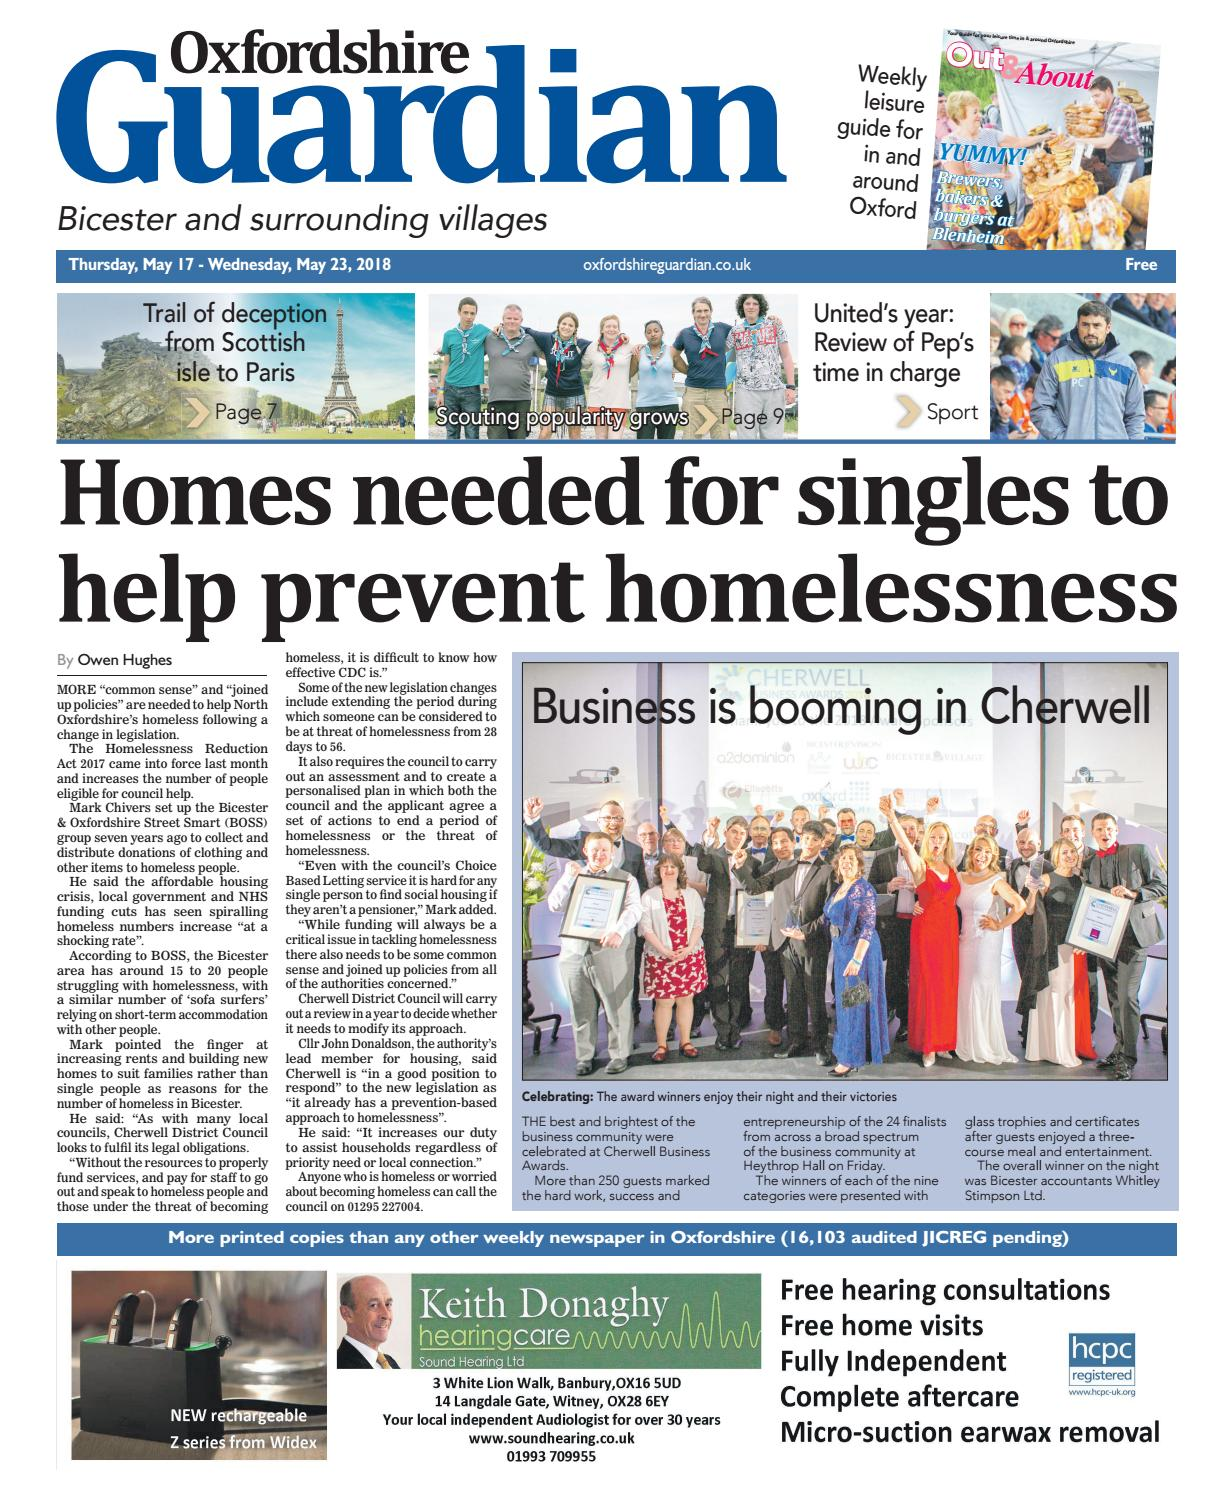 17 may 2018 oxfordshire guardian bicester by taylor newspapers issuu fandeluxe Gallery